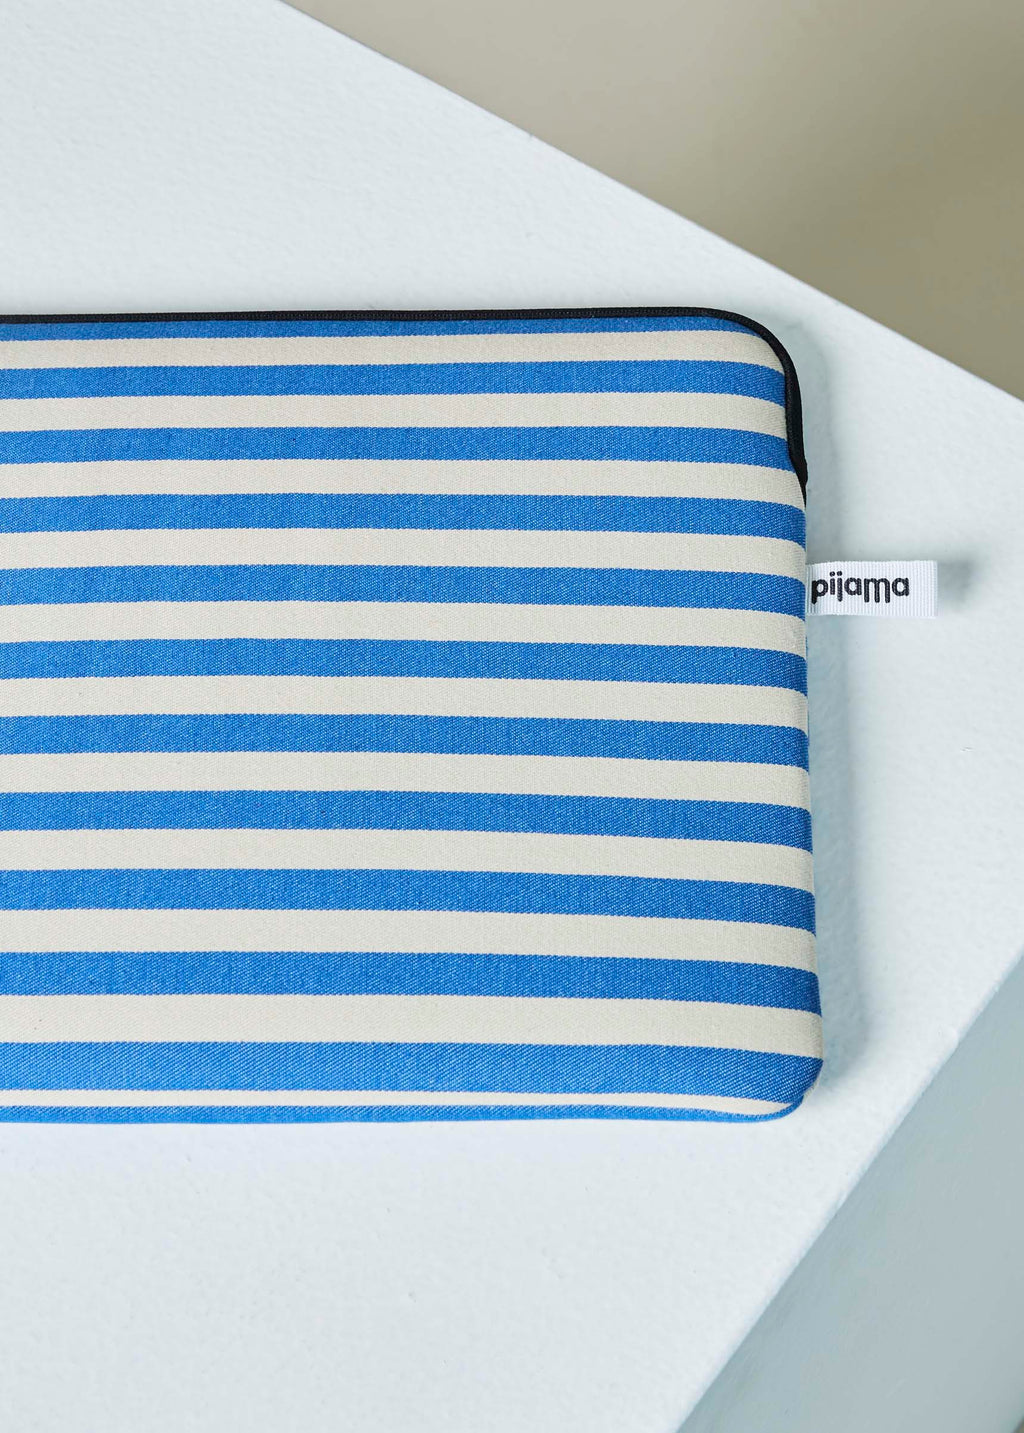 "Pijama 15"" Macbook Zip Case"